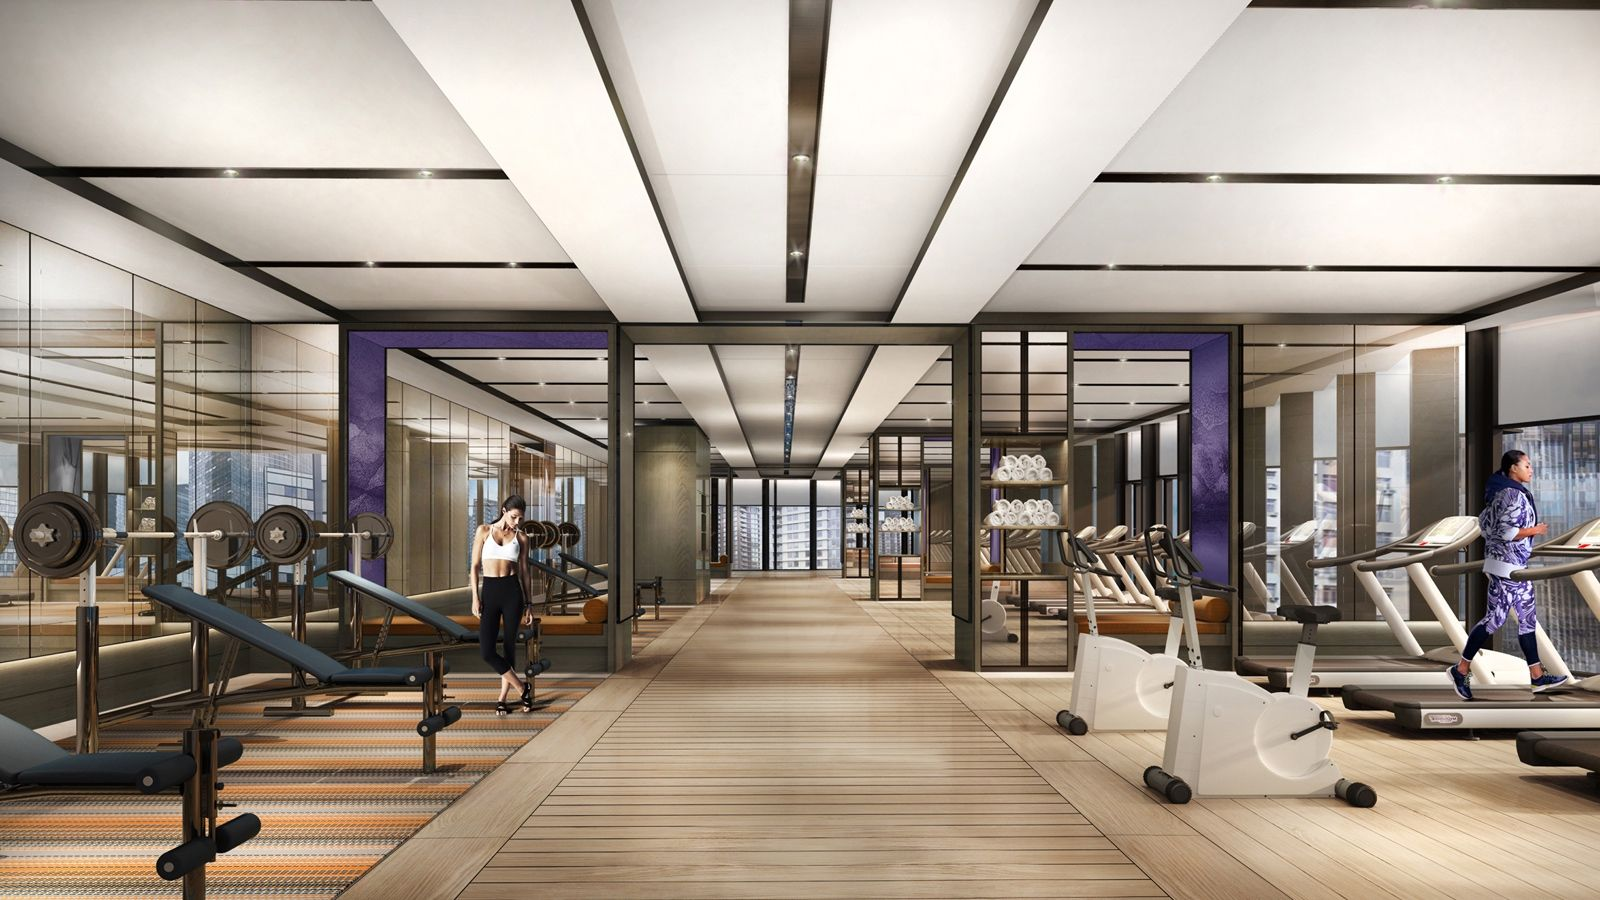 Four seasons to unveil new hotel in seoul in october 2015 for Design hotel seoul